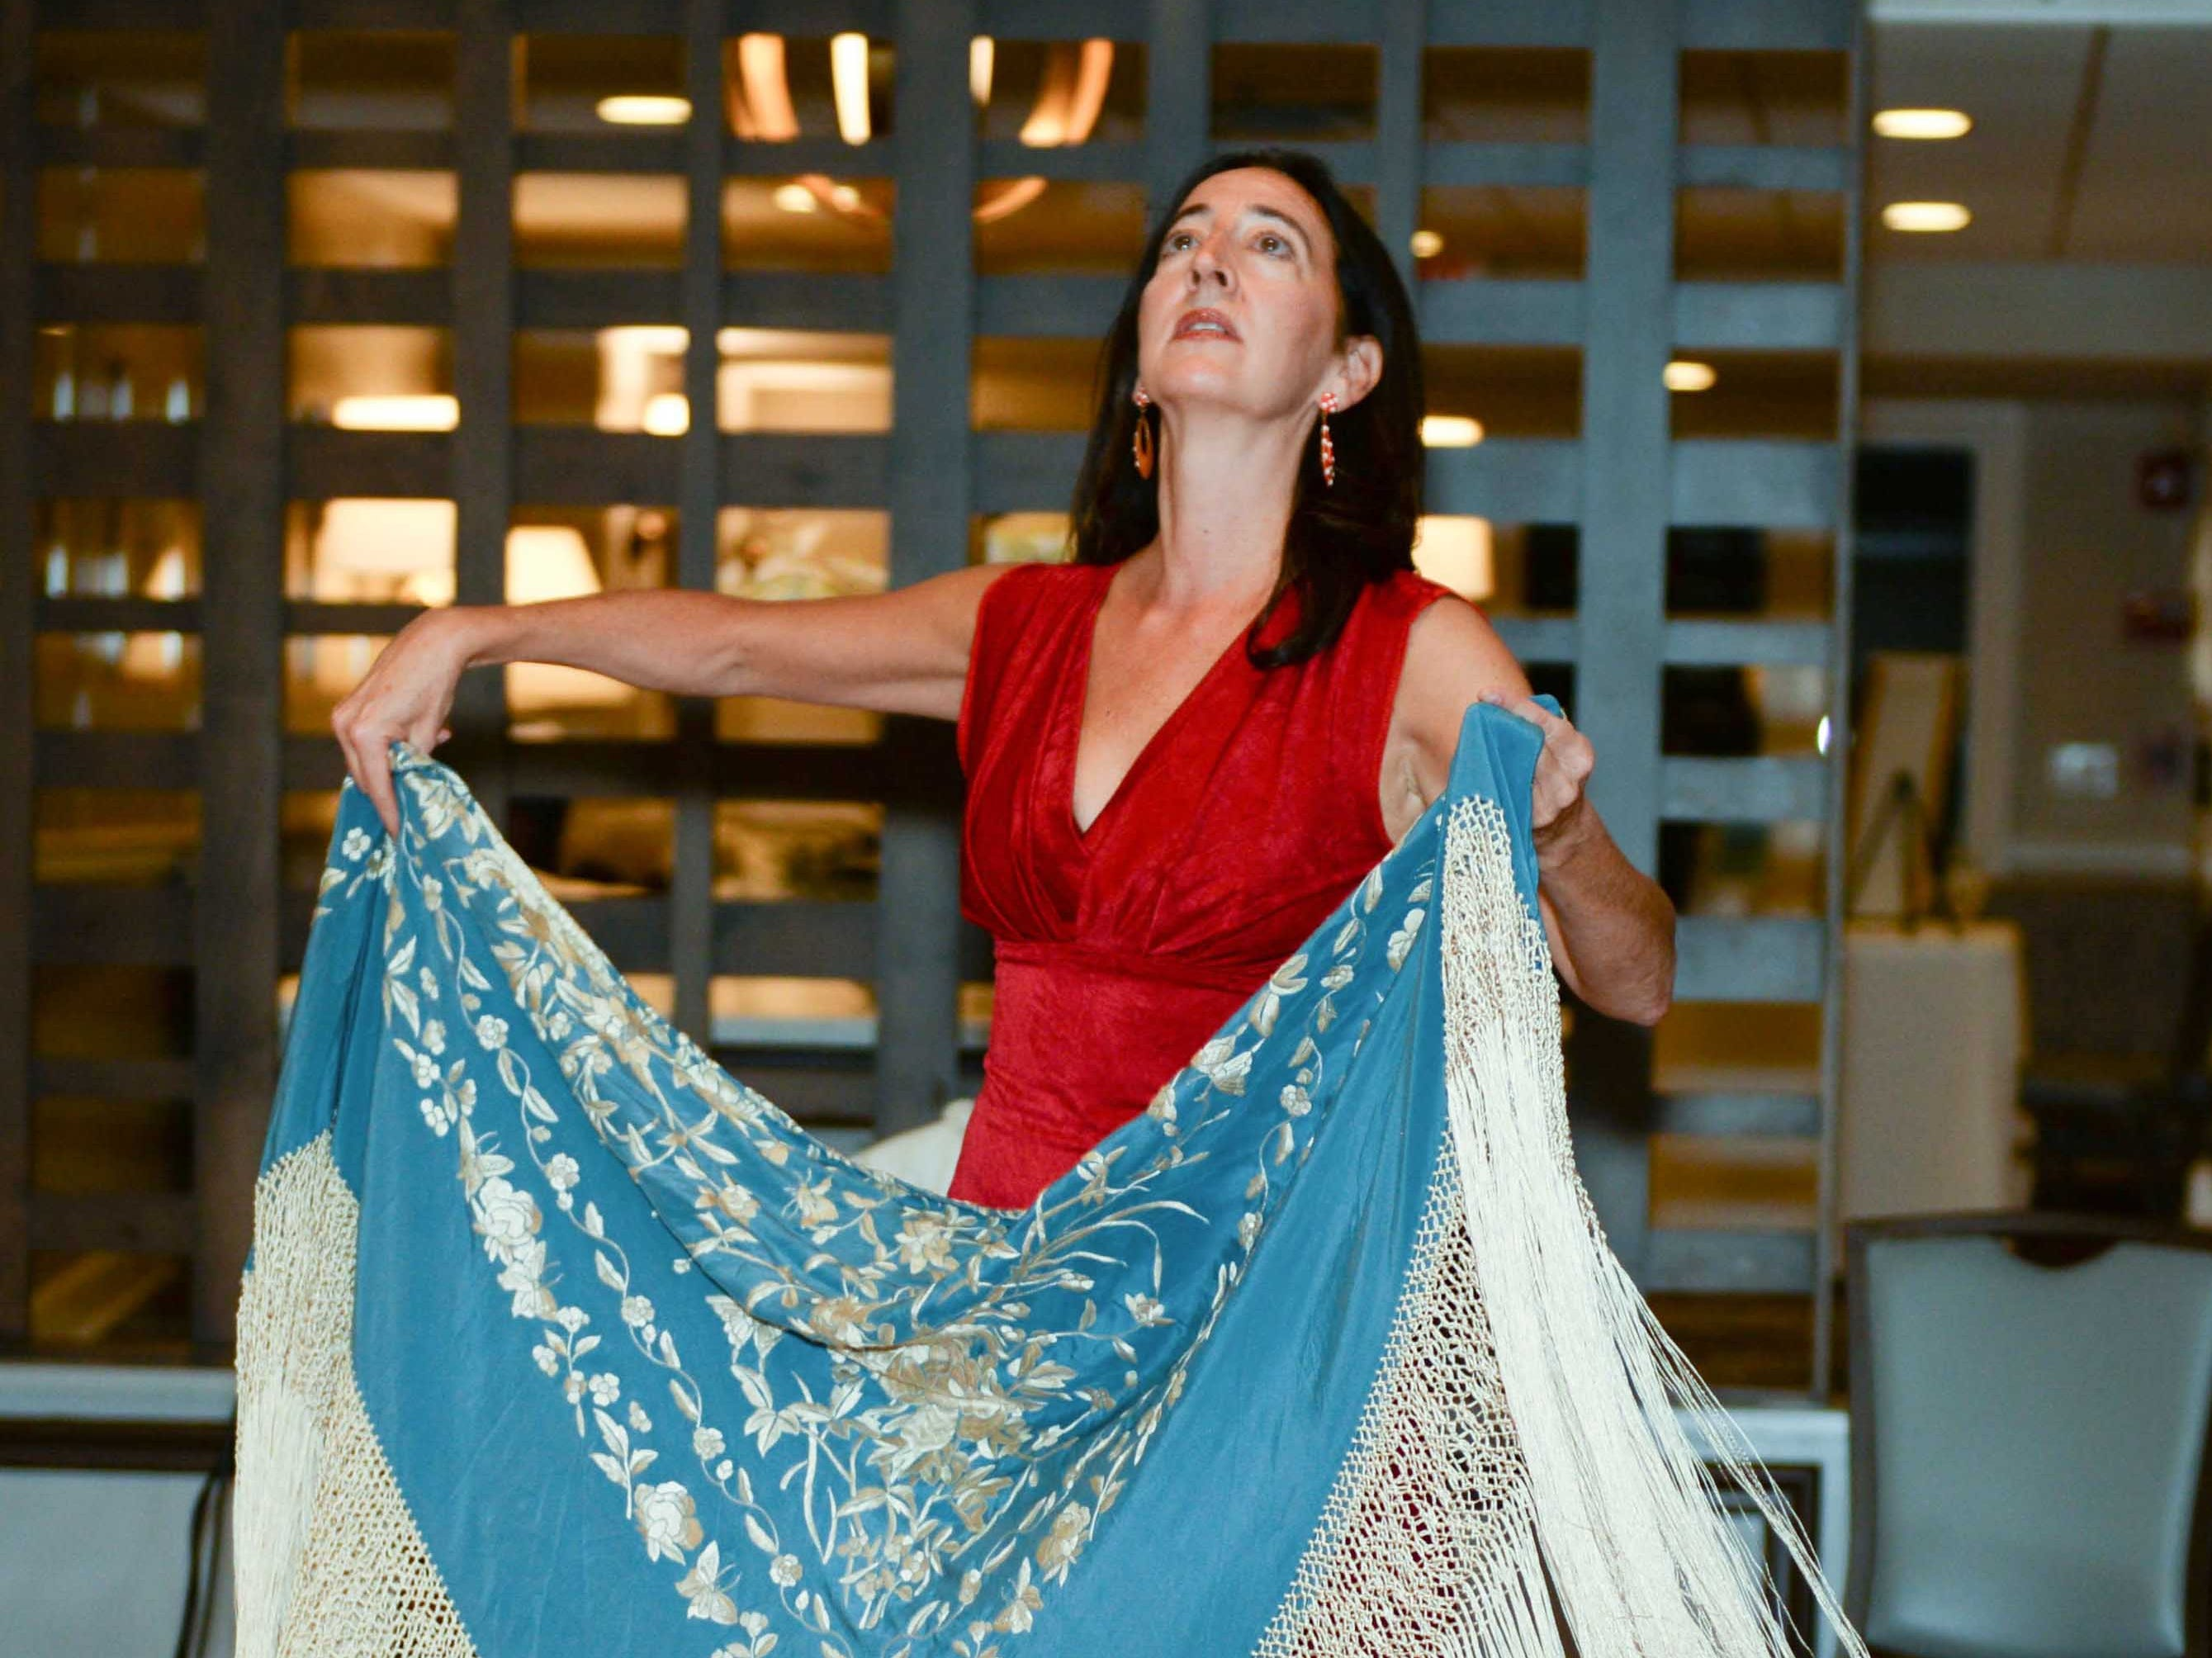 Flamenco dancer Eva Conti shows the audience a handmade dance shawl during the Meet the Artist Dinner at the Stuart Yacht & Country Club.